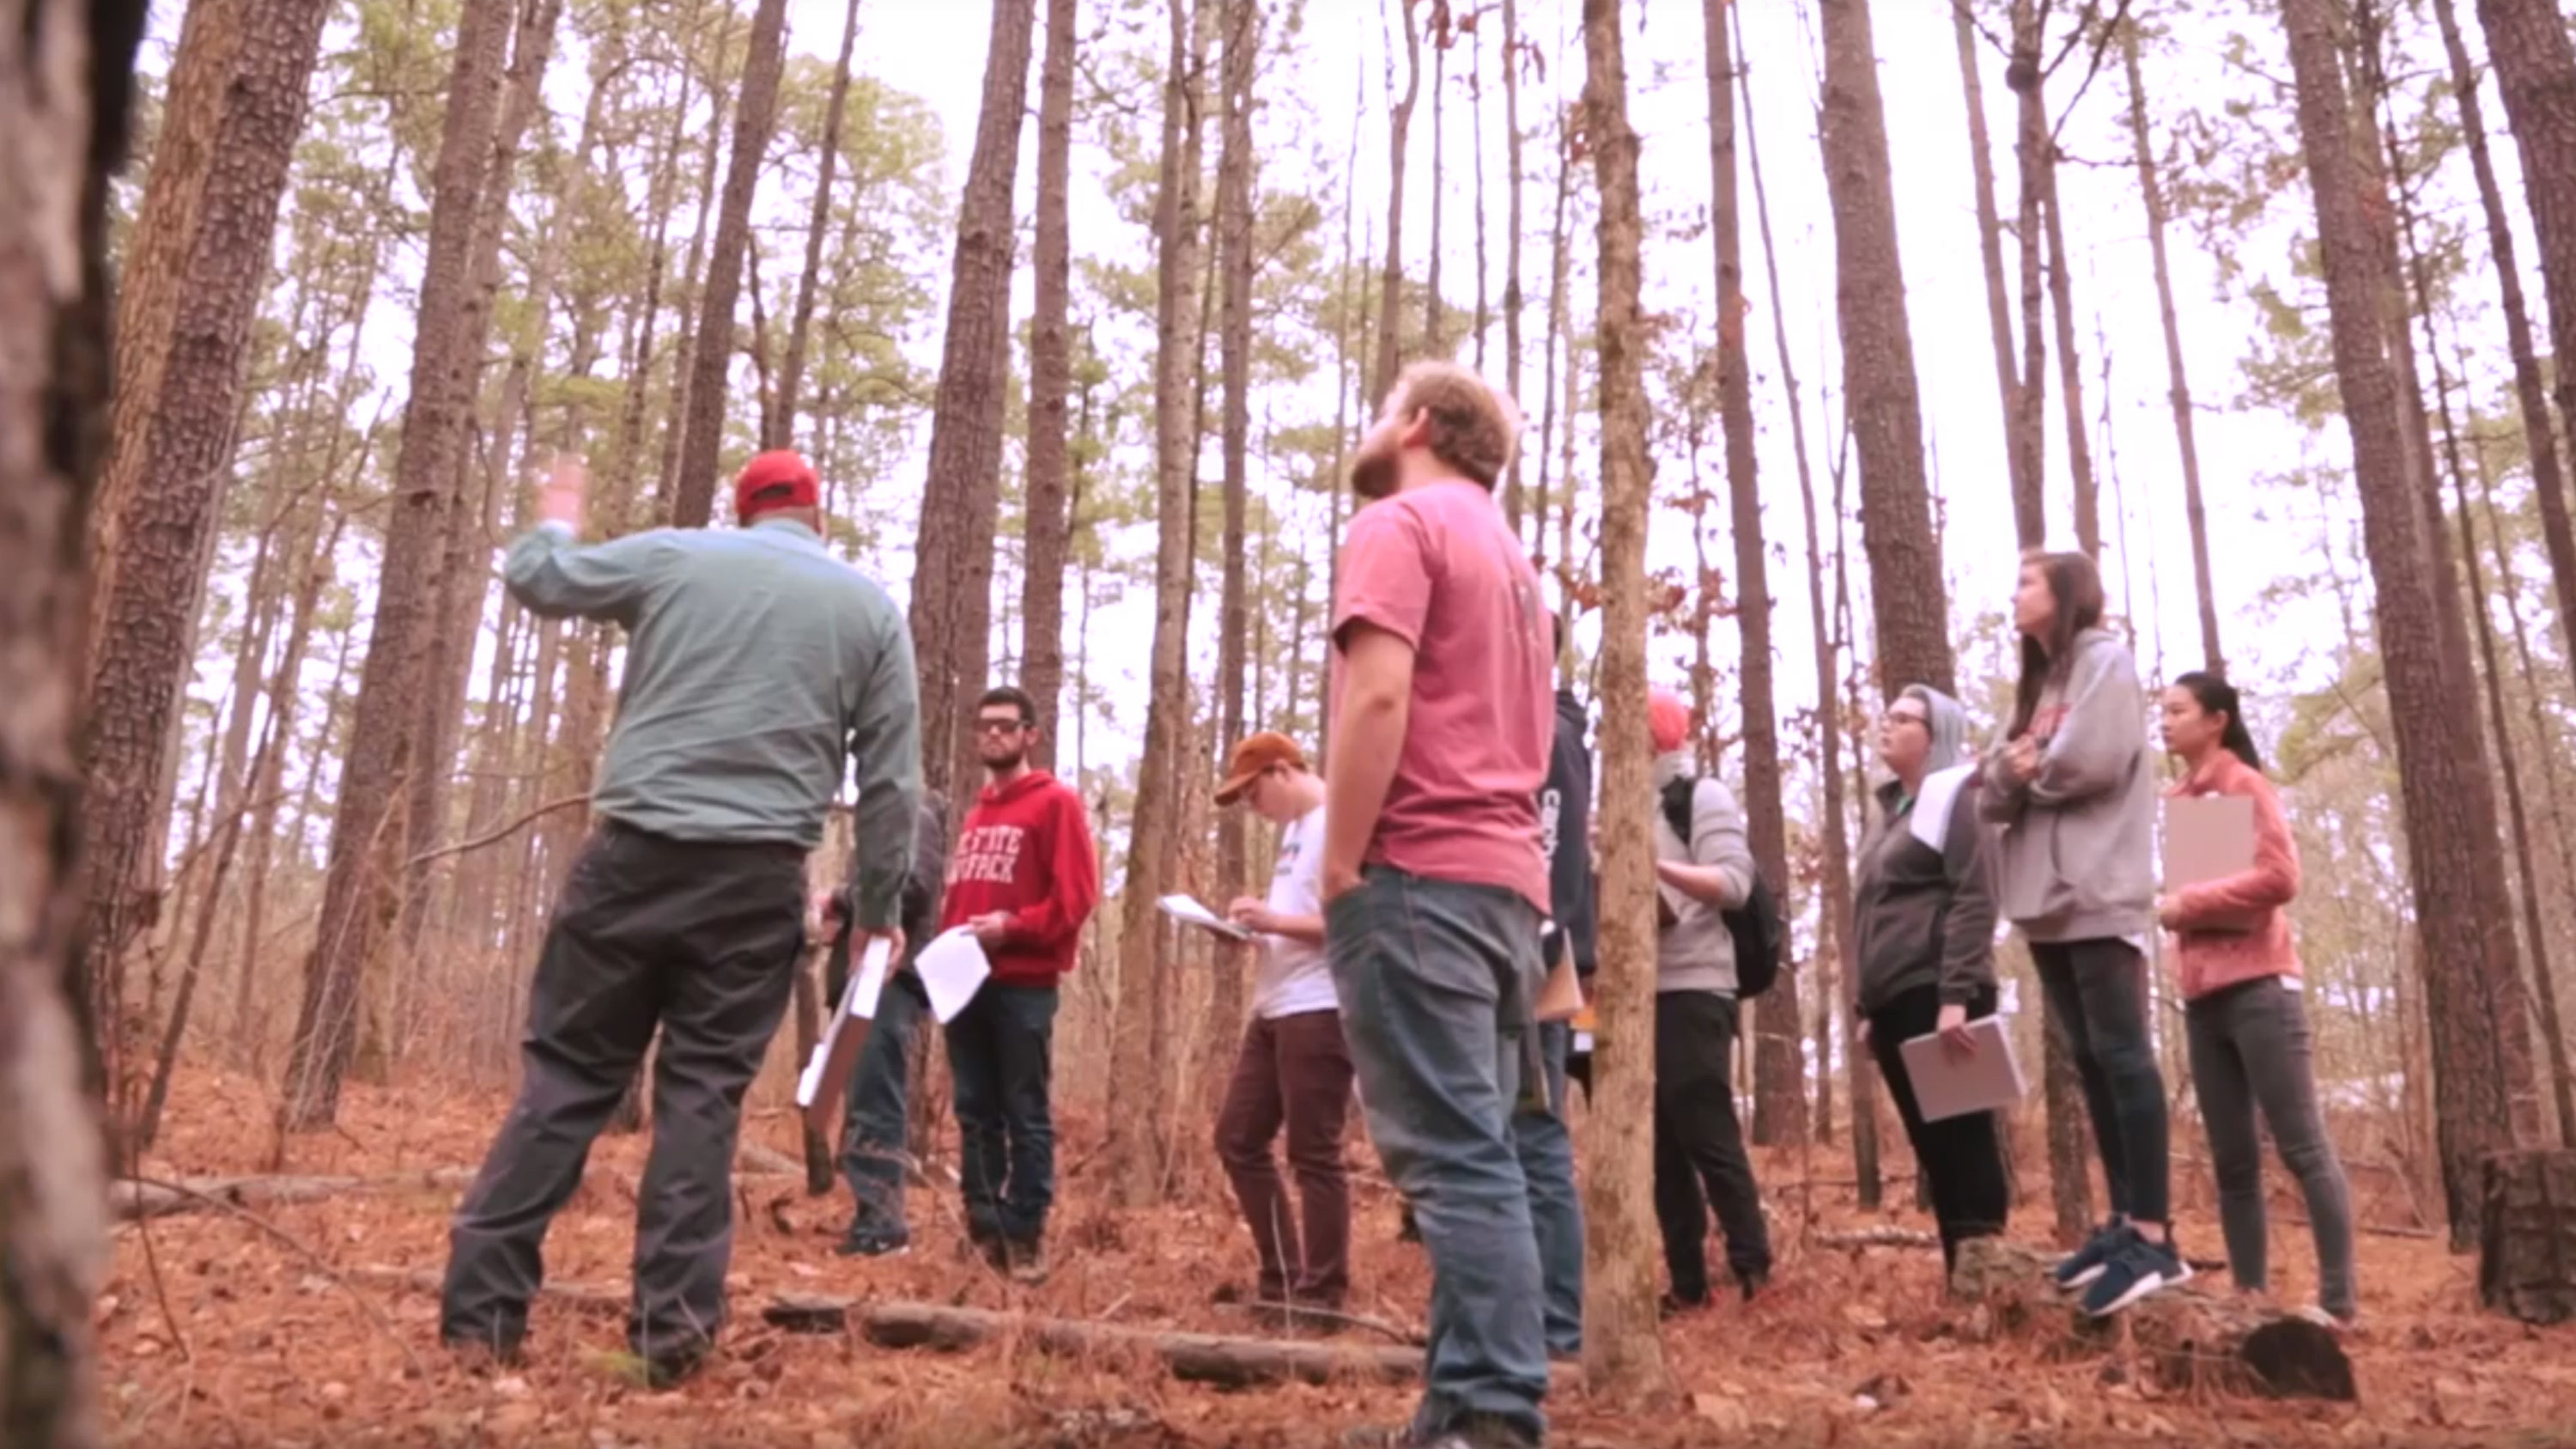 A group of students in a forest - Giving - College of Natural Resources NCState University